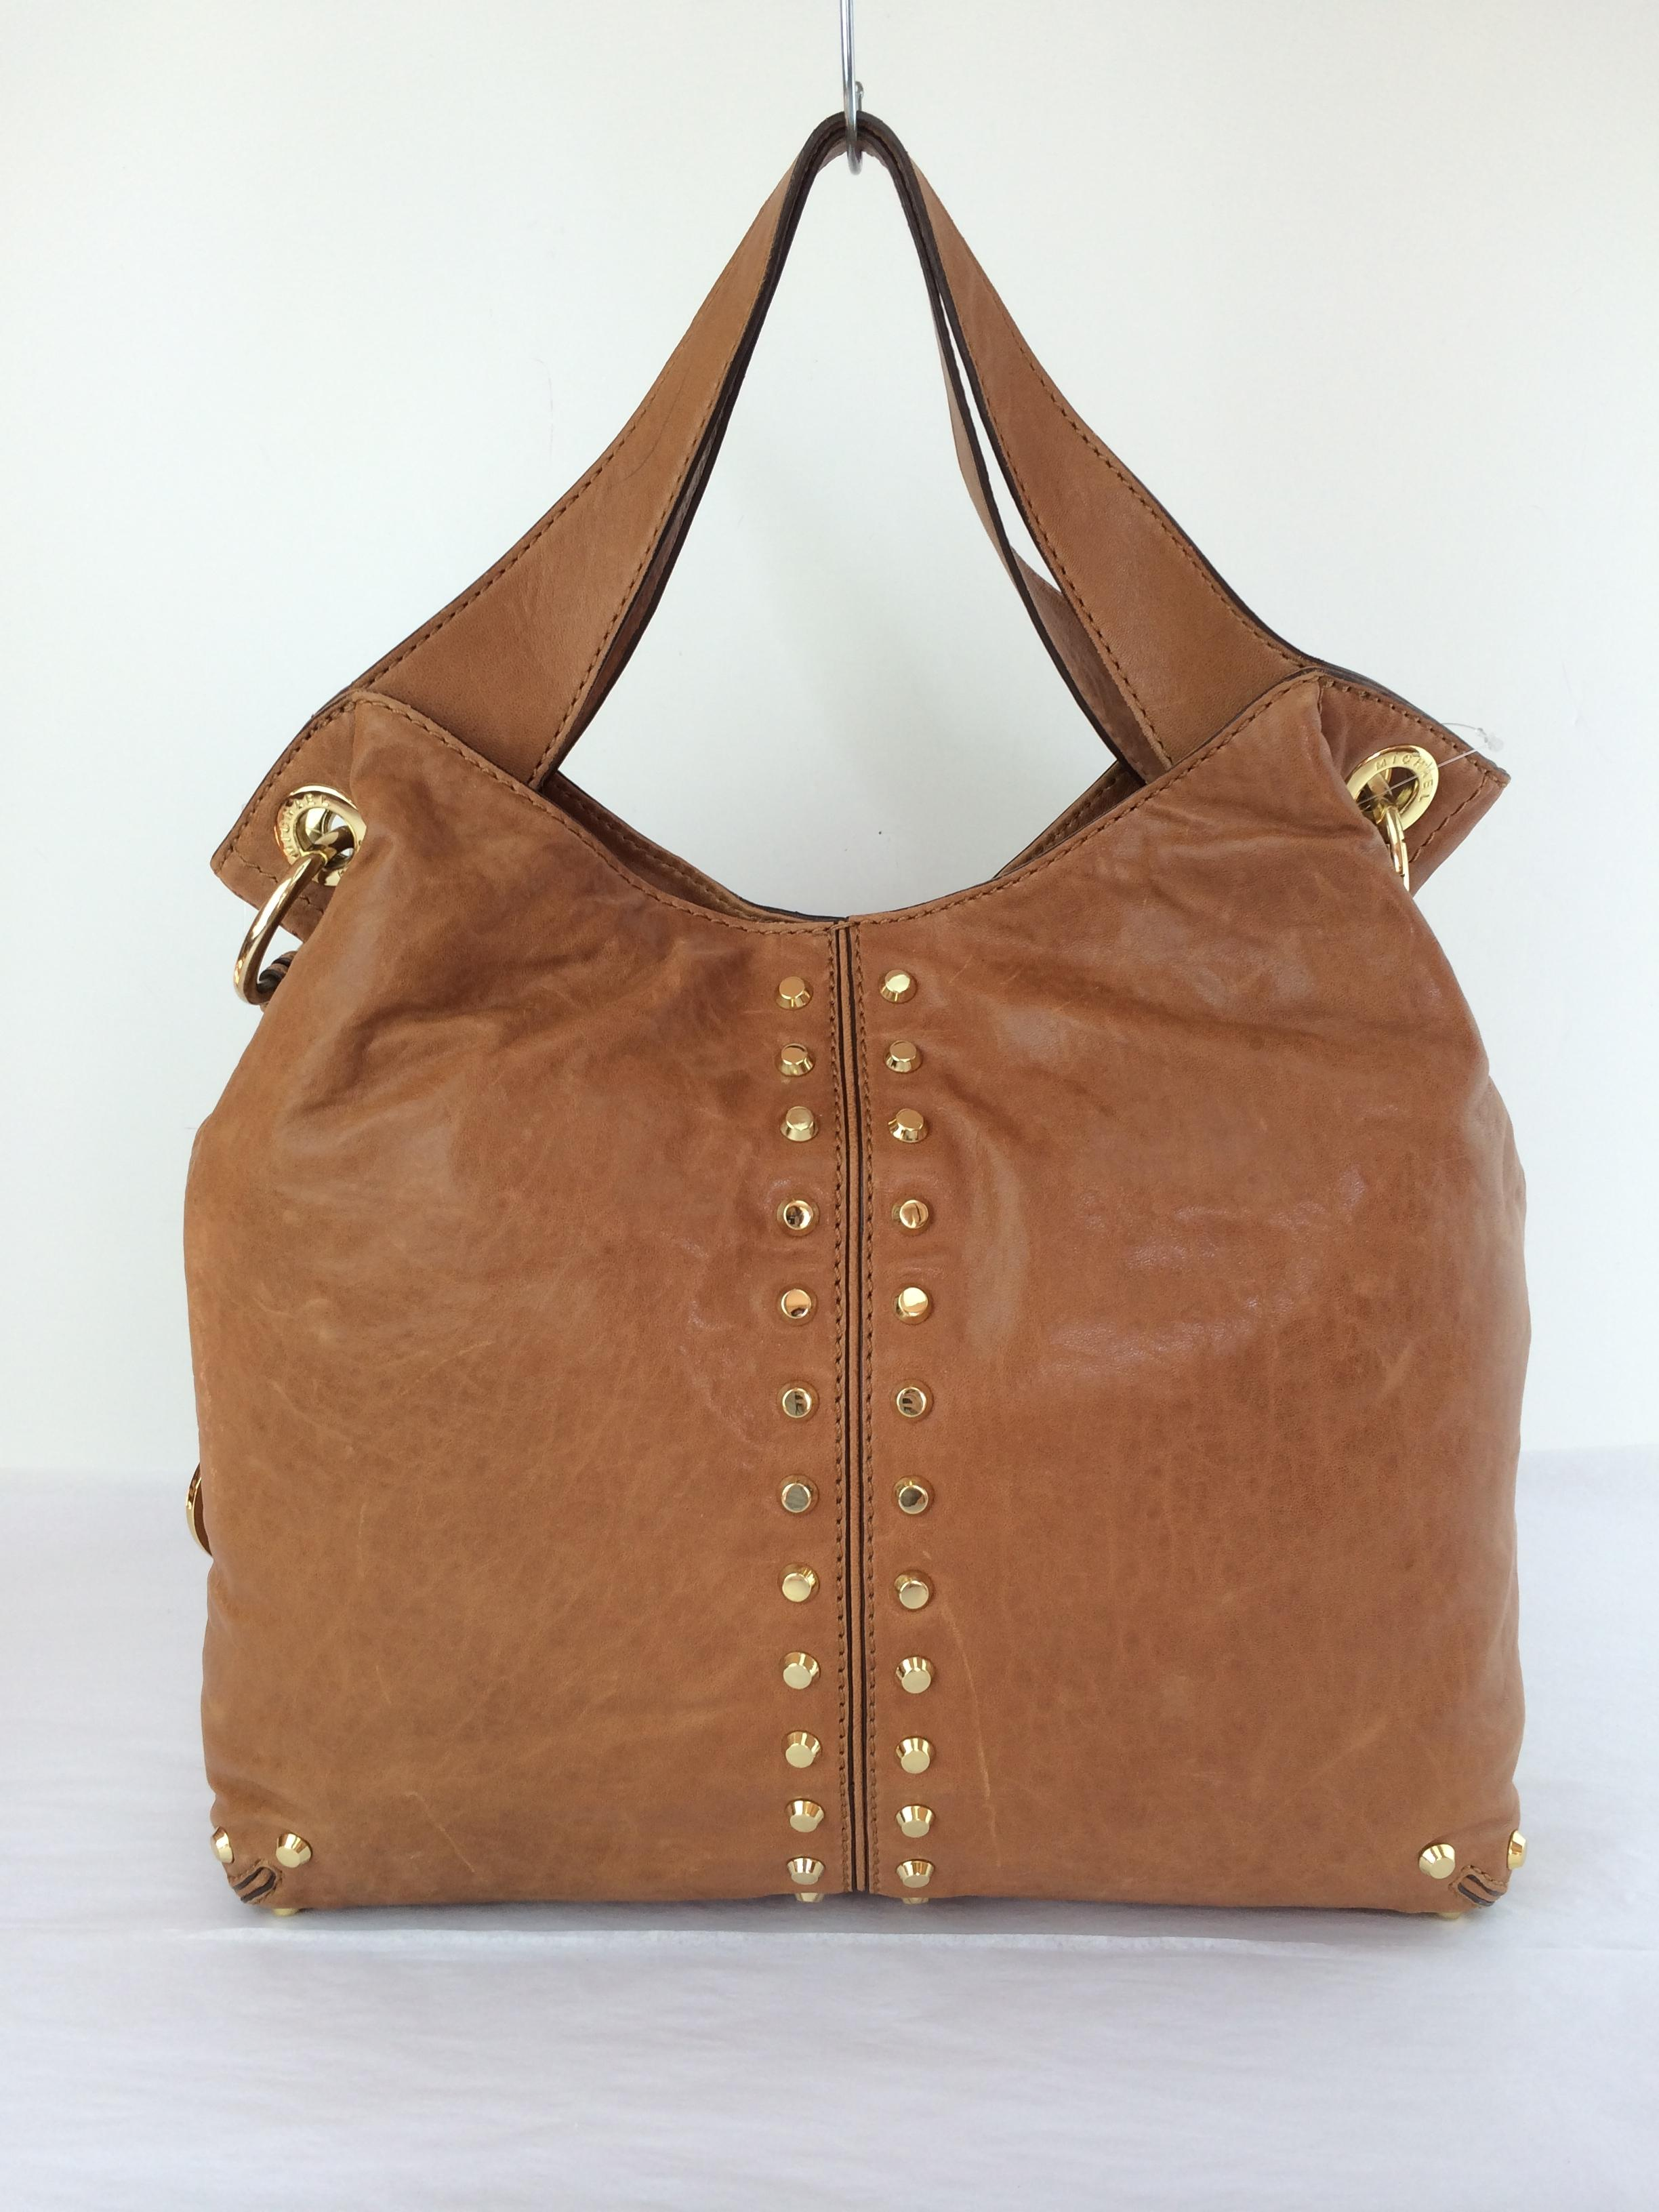 1197babd9562 ... france michael michael kors uptown leather shoulder tote in luggage  brown. 123456789101112 a1016 0b13b